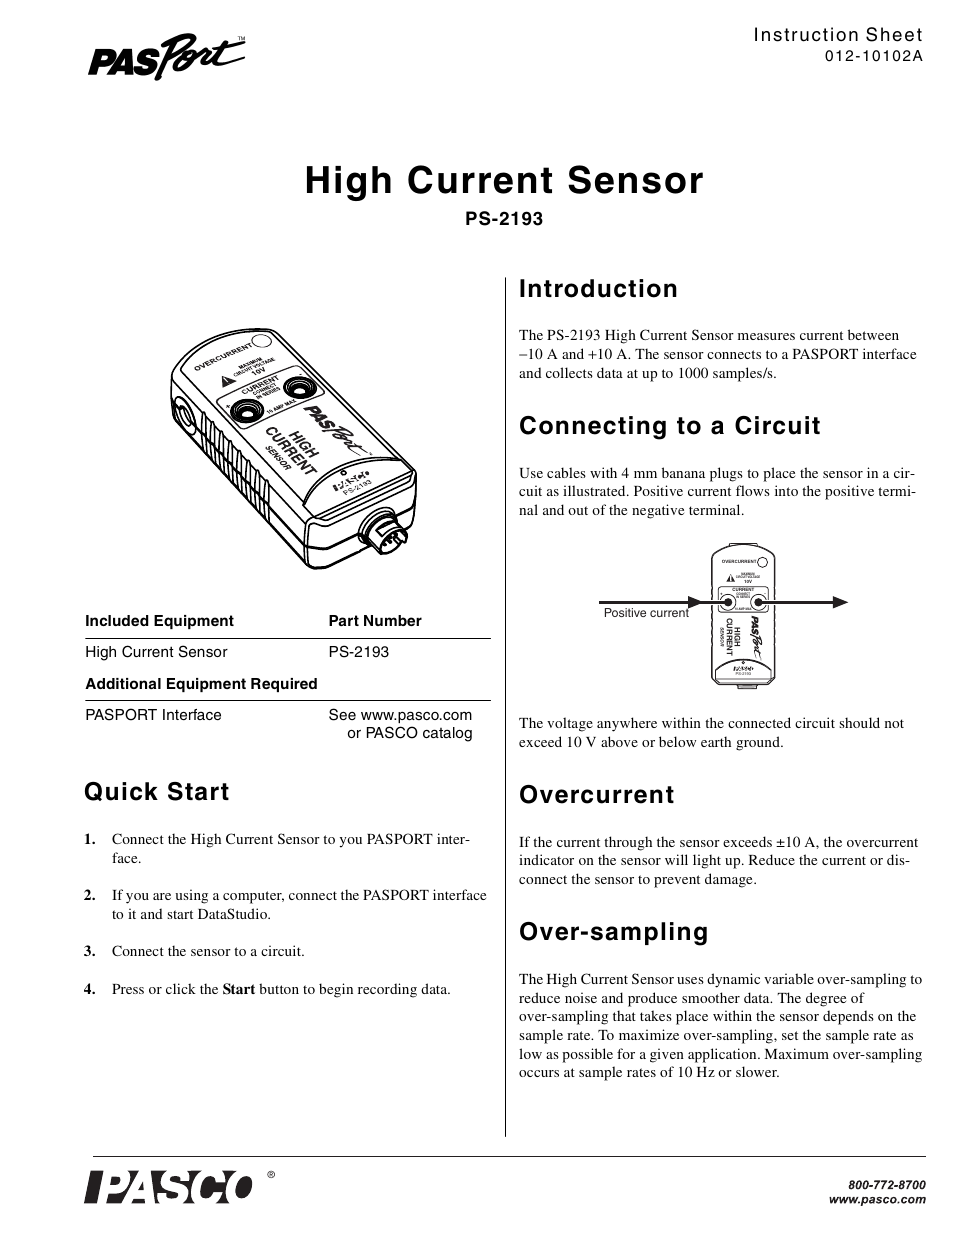 Pasco Ps 2193 High Current Sensor User Manual 2 Pages Currentsensorcircuitjpg